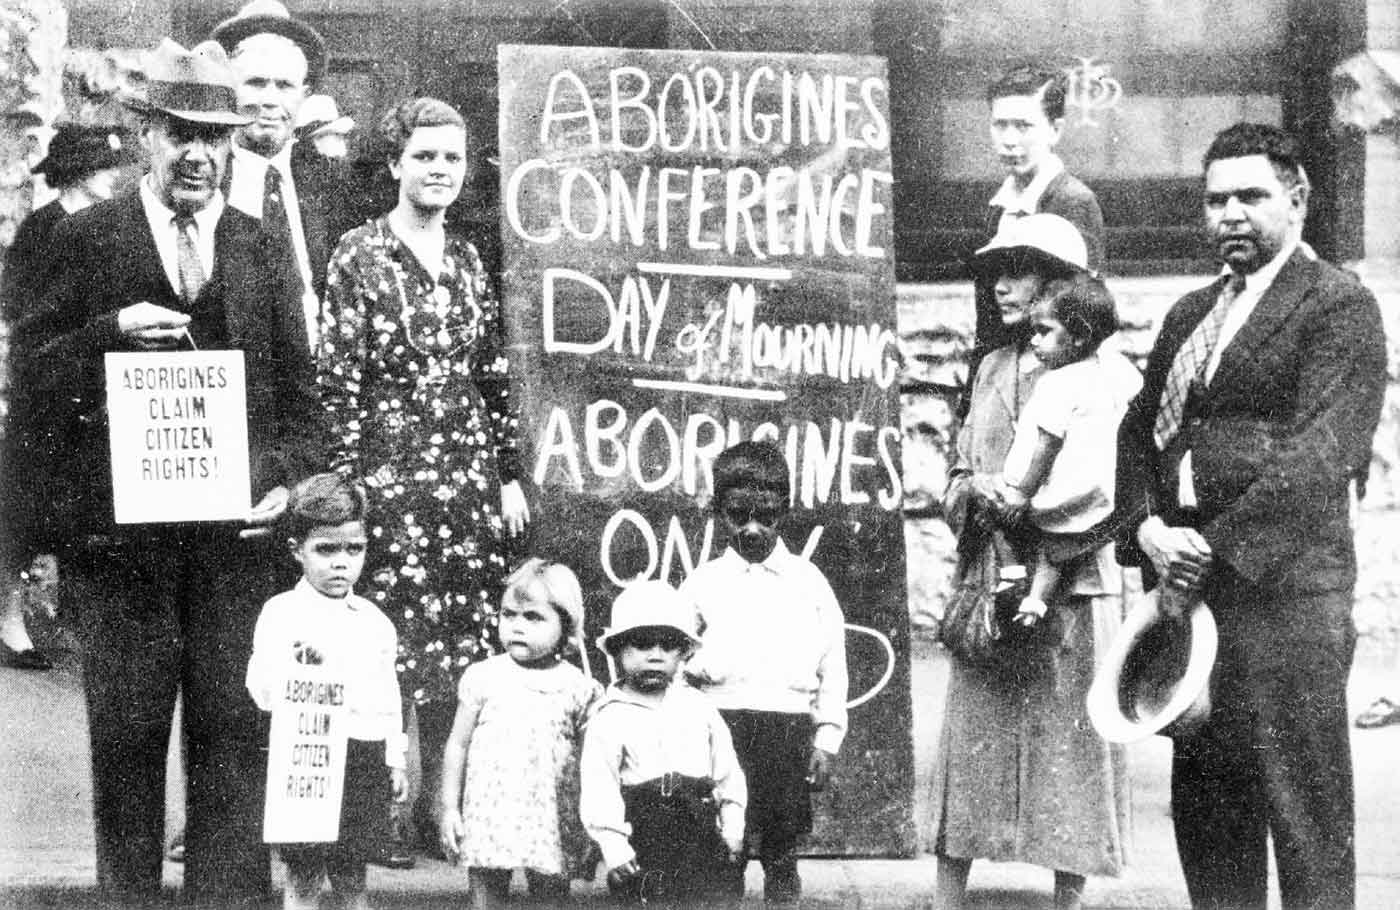 Black and white photo of a group of men, women and children holding protest placards and standing in front of a large banner that includes the text: 'ABORIGINES CONFERENCE'.